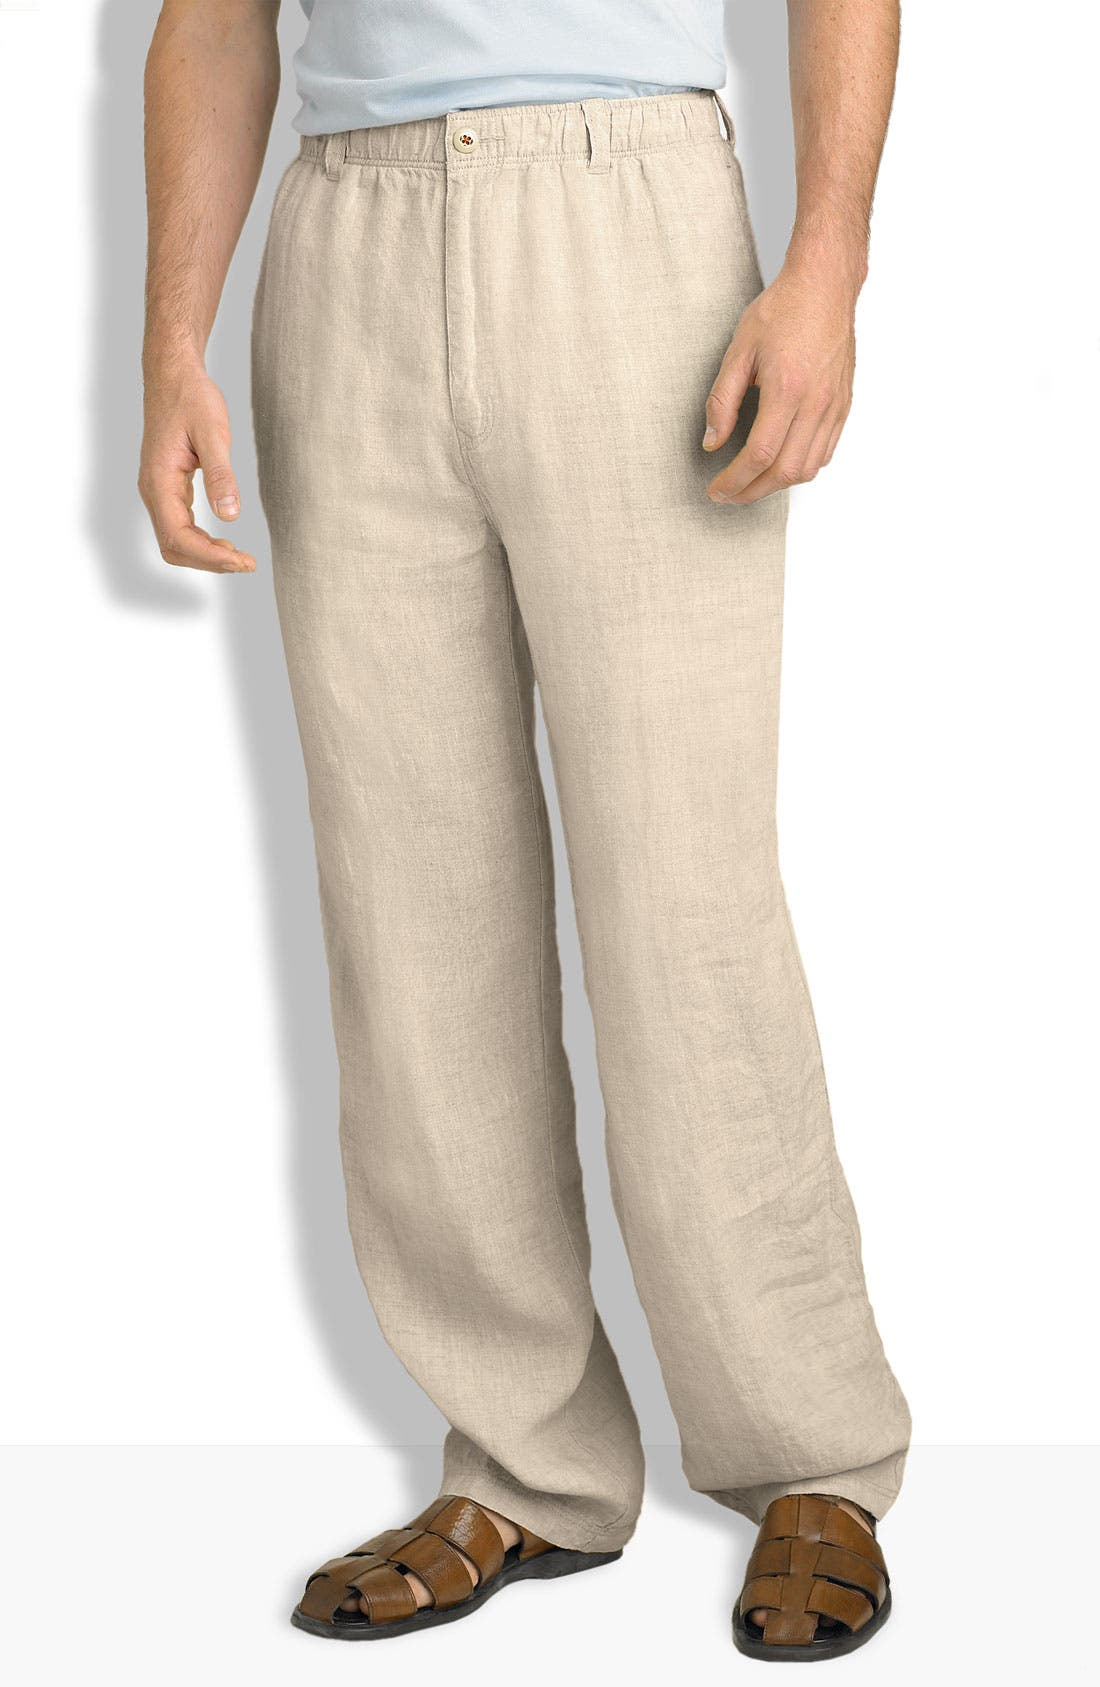 Alternate Image 1 Selected - Tommy Bahama Relax 'Linen on the Beach' Pants